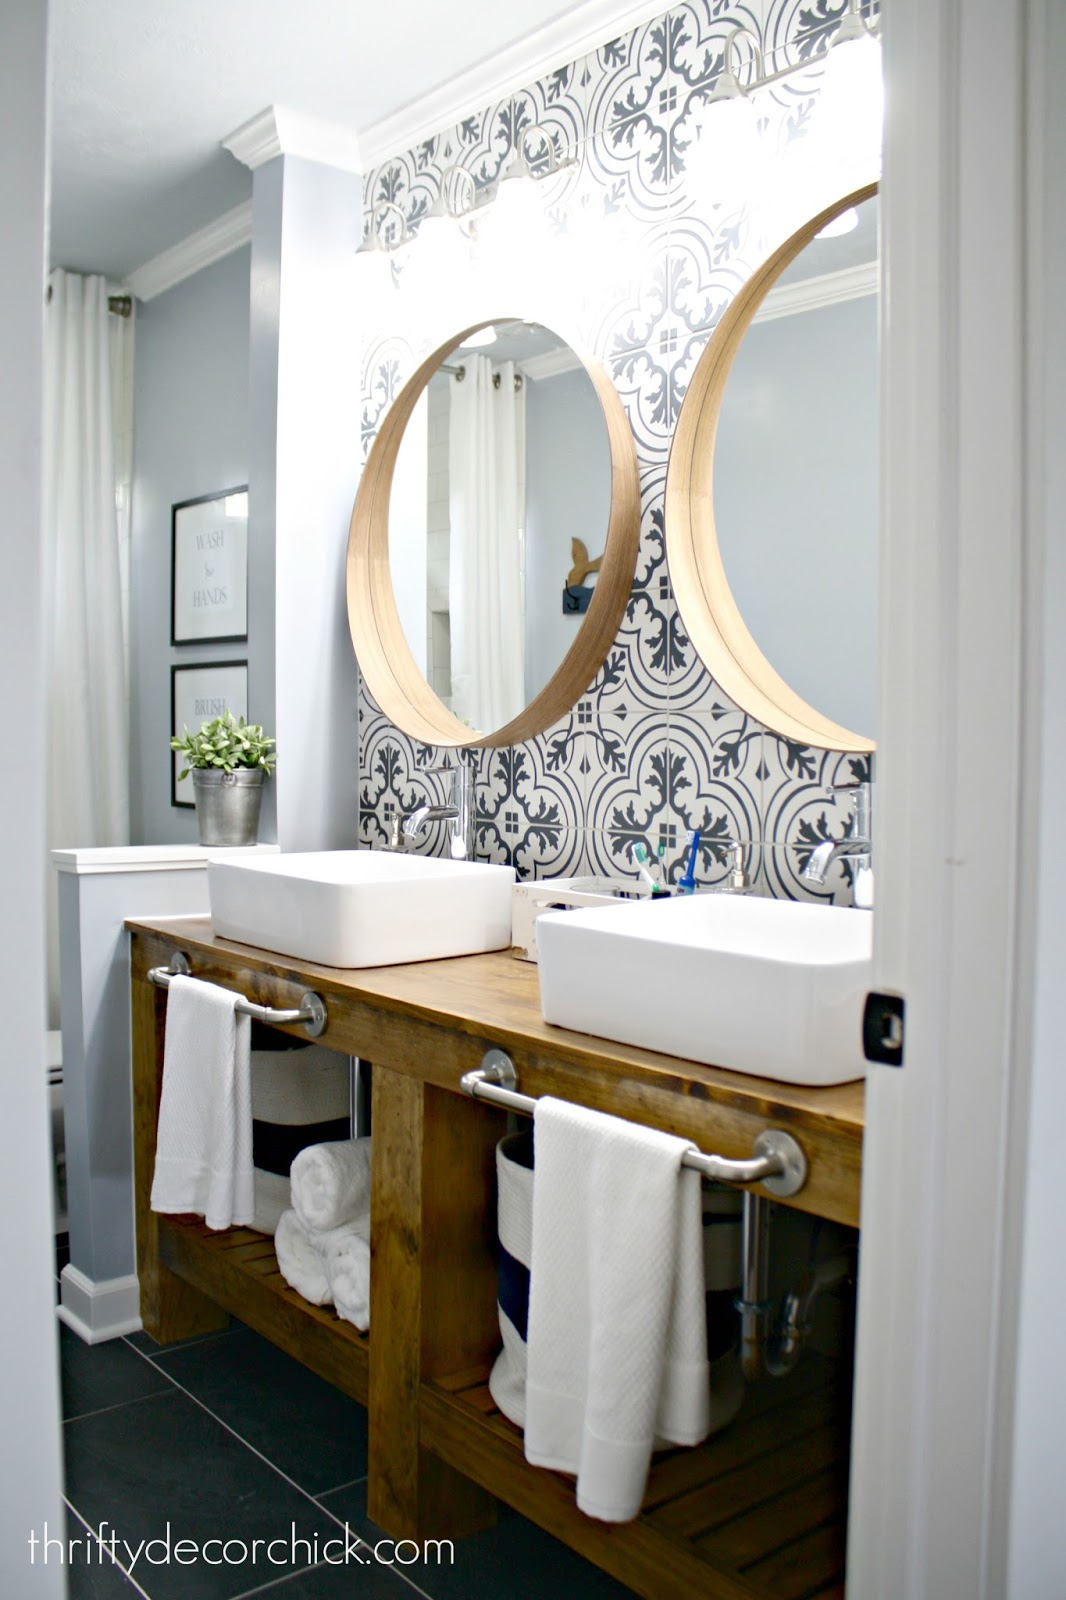 Merveilleux Incredible Bathroom Renovation Reveal!